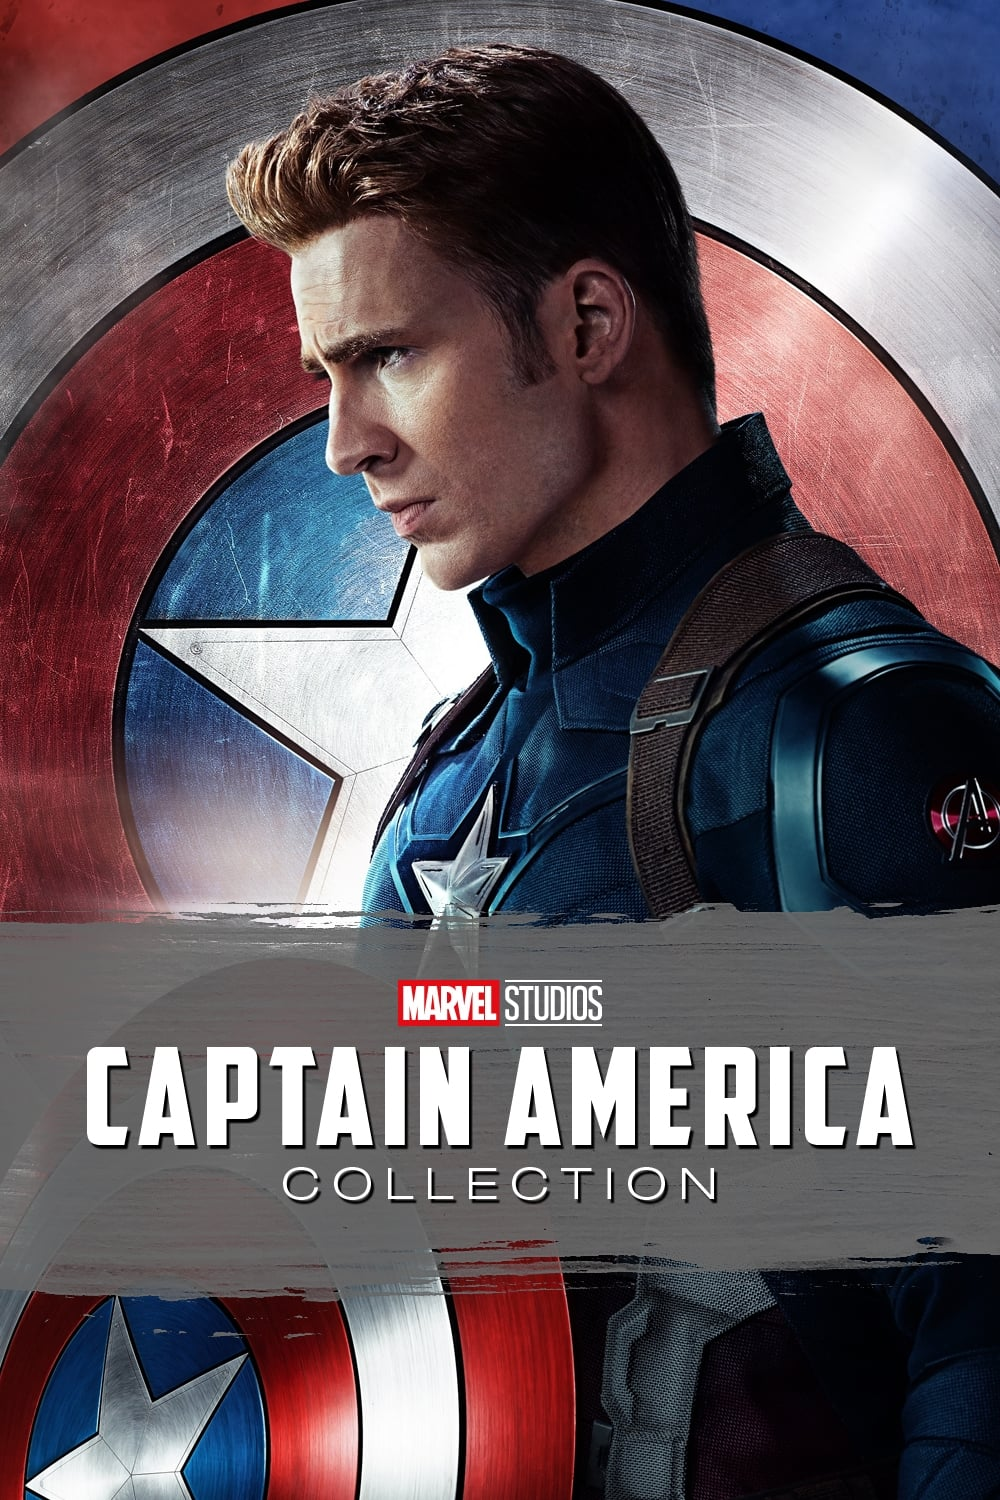 all movies from captain america collection saga are on